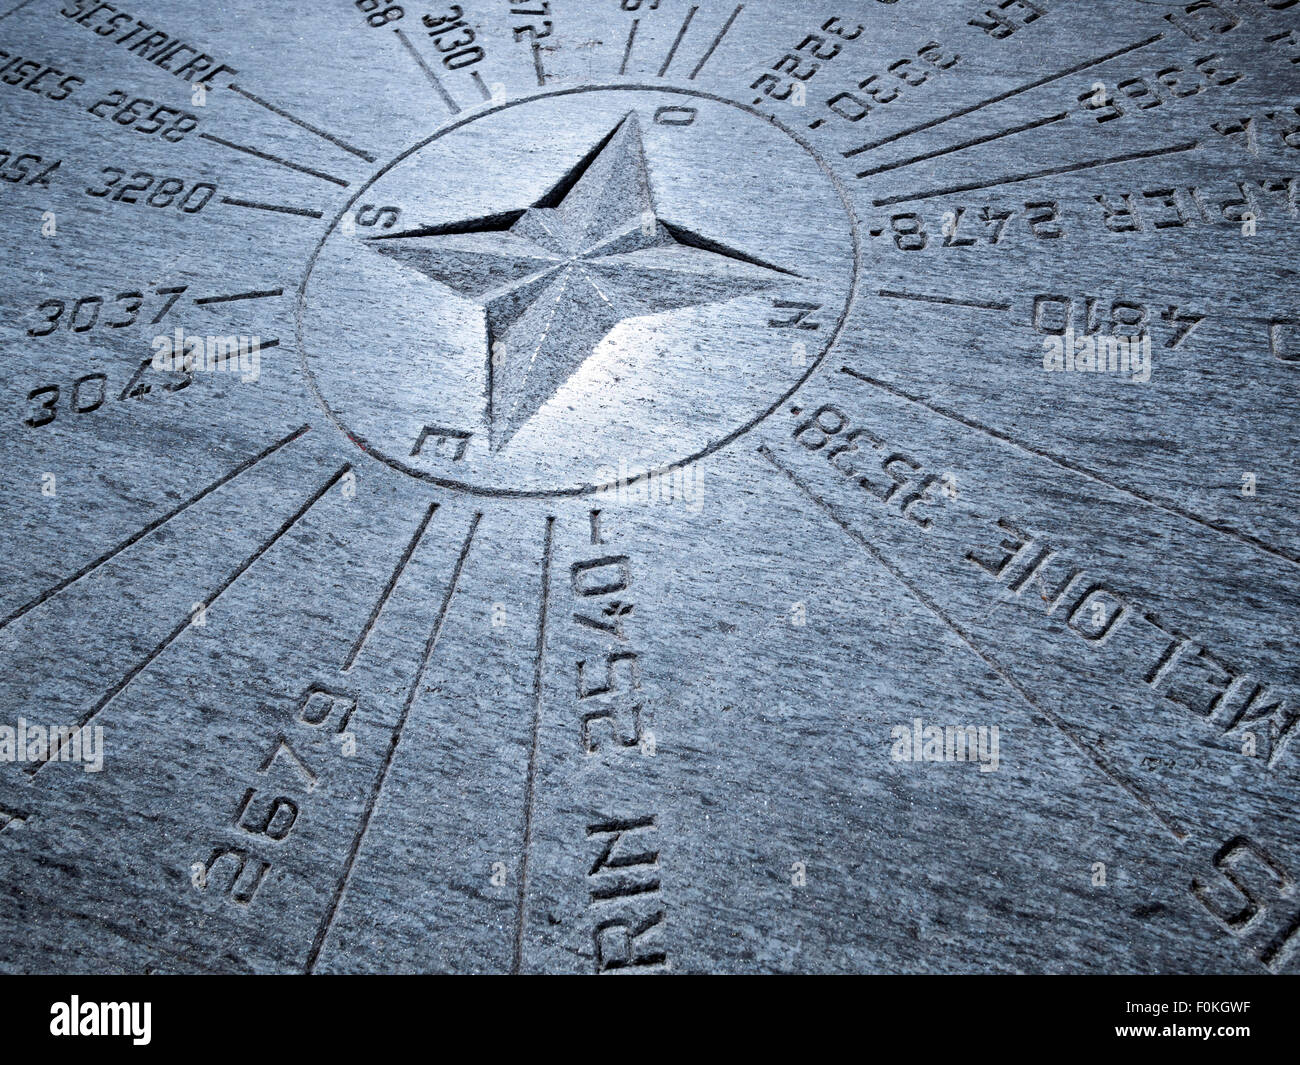 Compass card and indication of distances - Stock Image